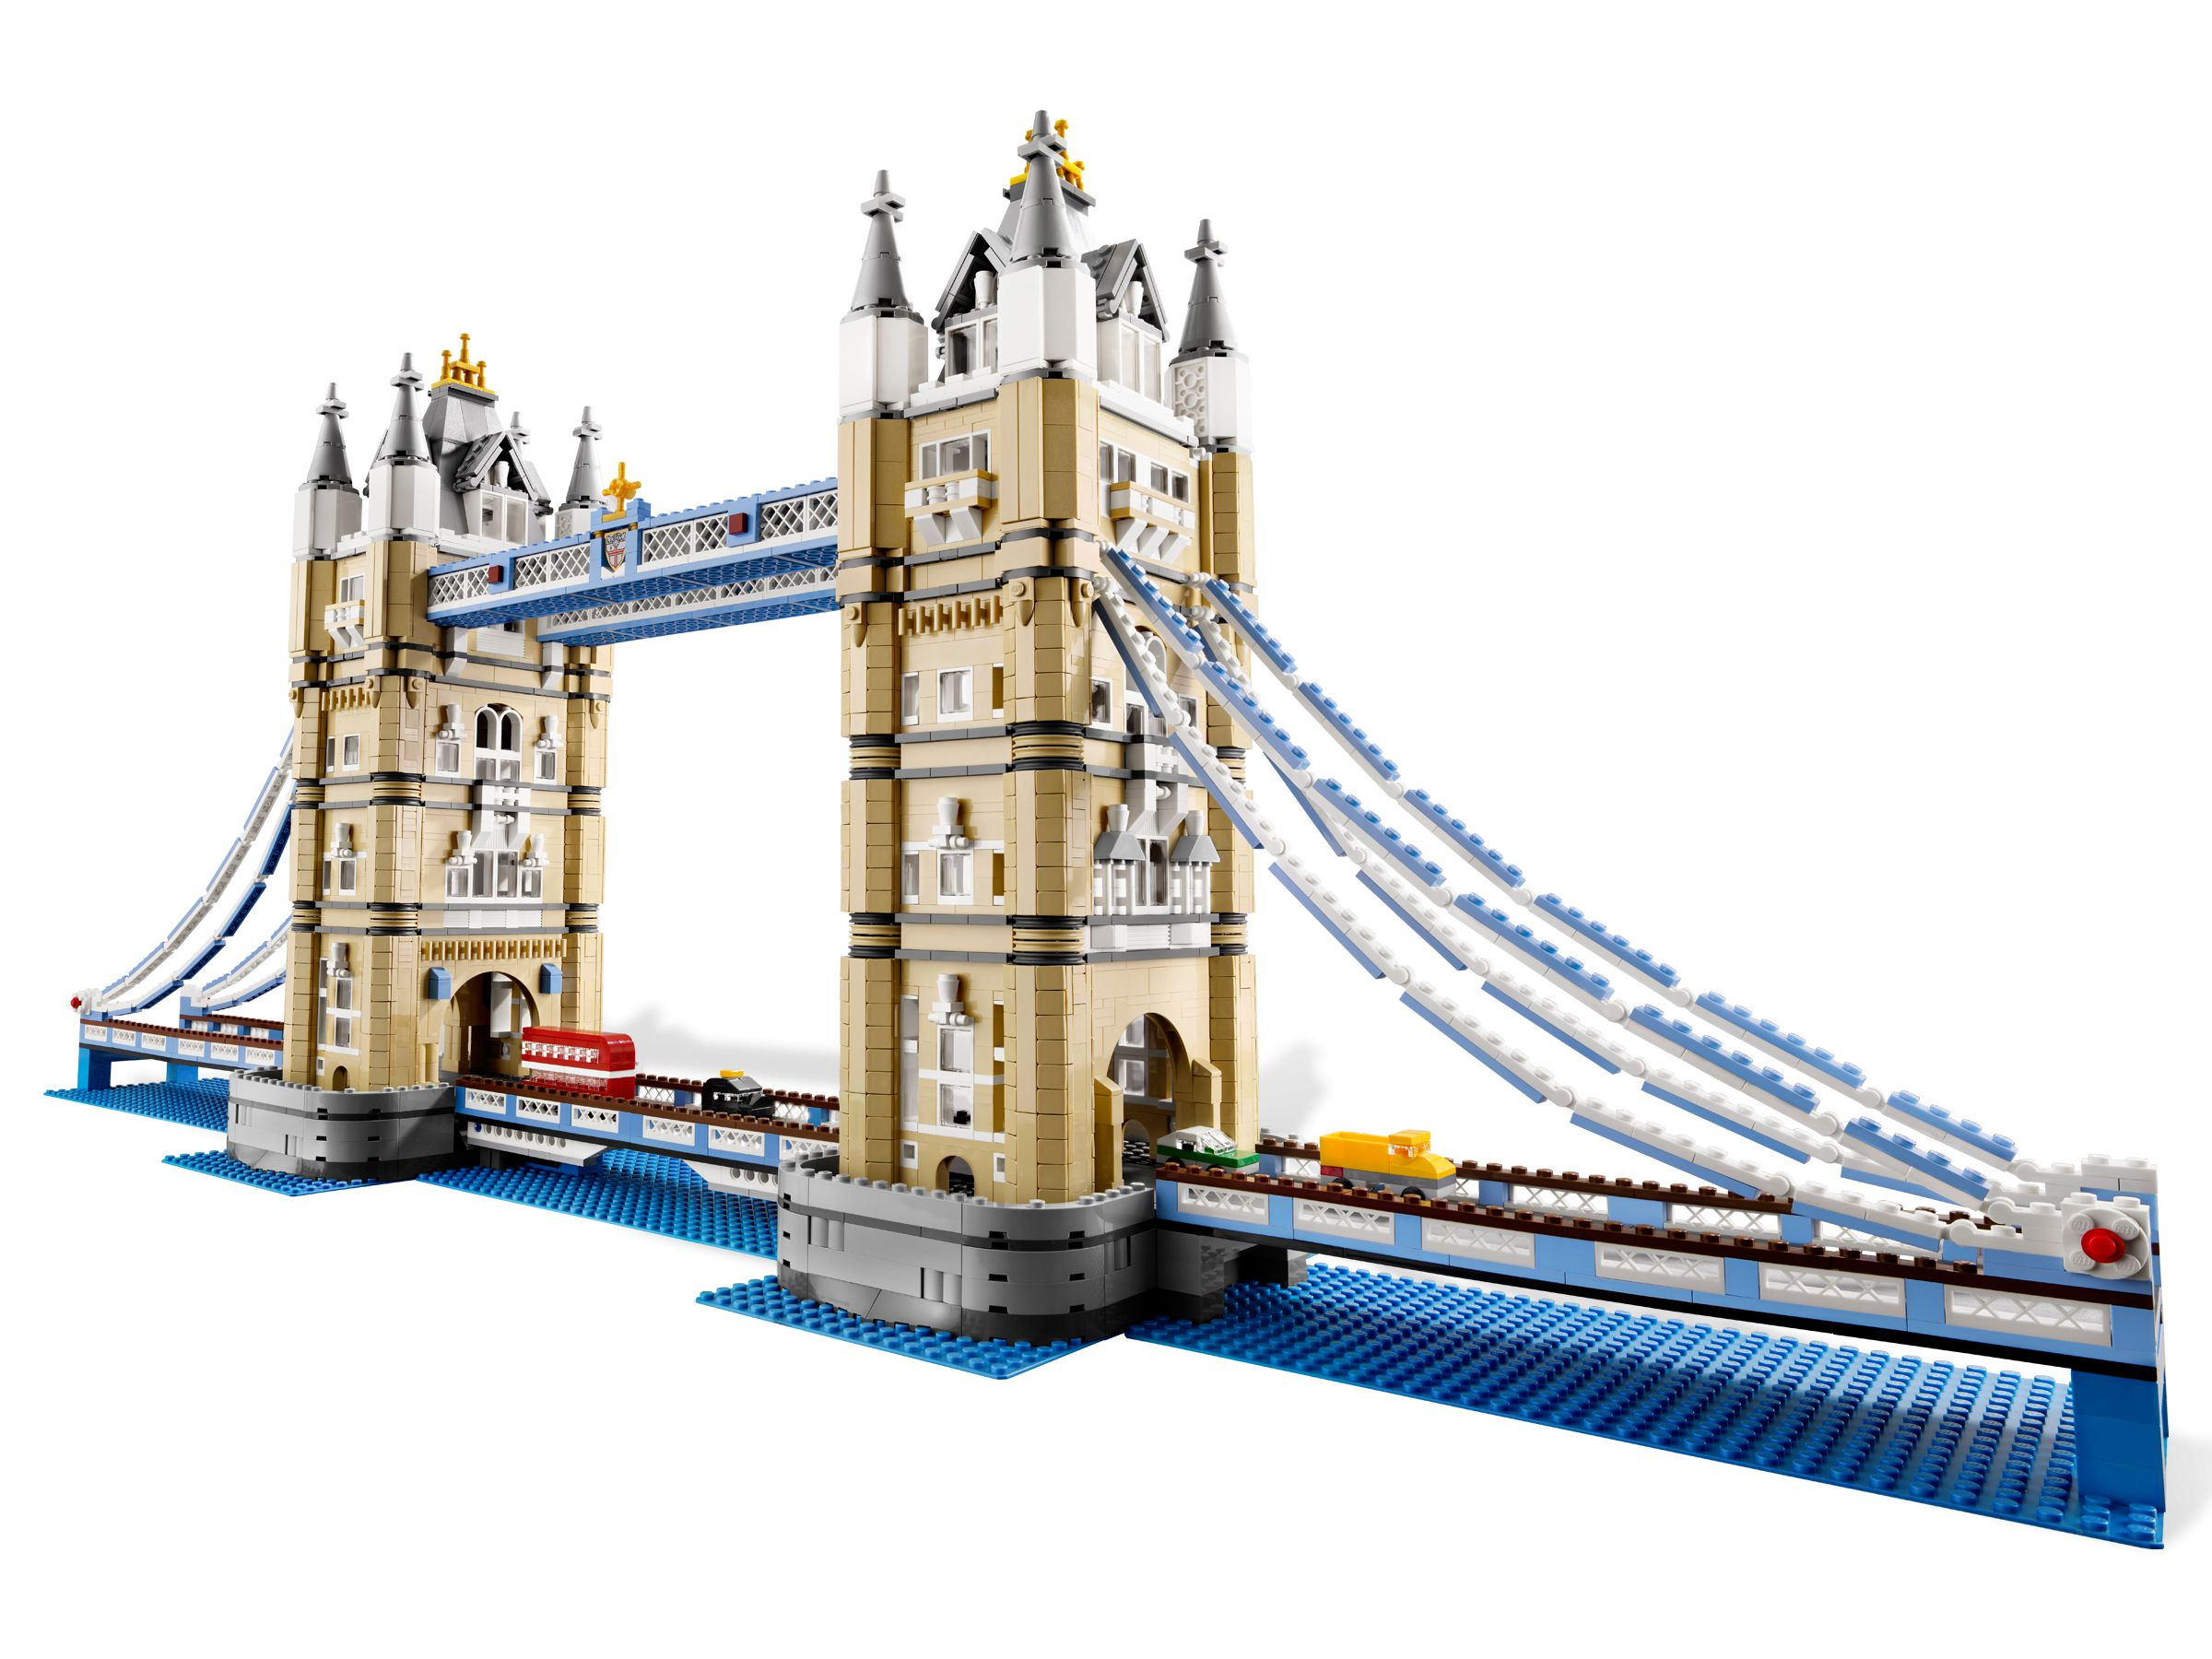 LEGO Advanced Models 10214 Tower Bridge LEGO_10214.jpg